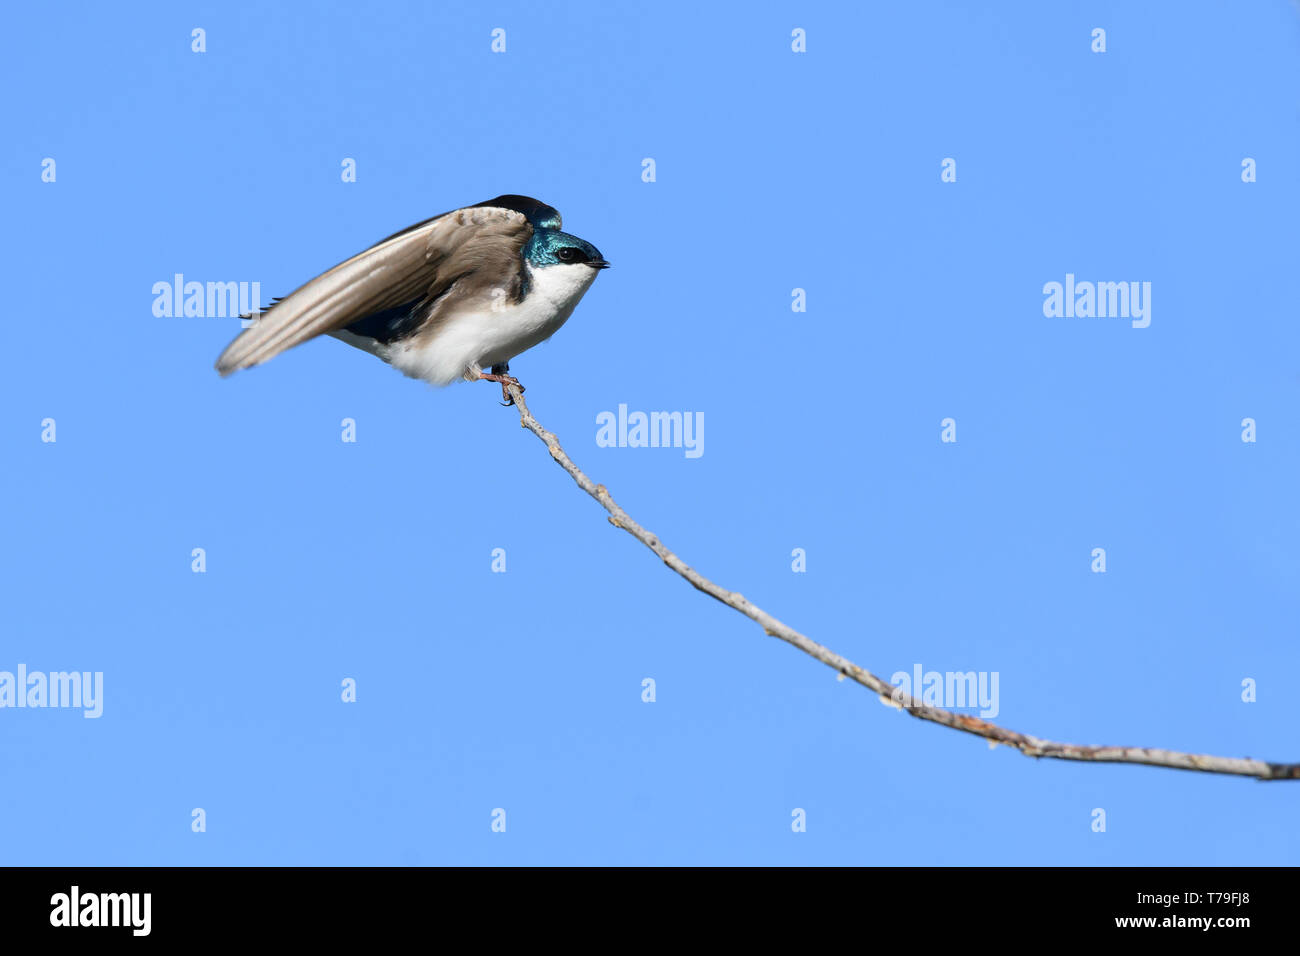 A male Tree Swallow spreads its wings before takeoff at Ashbridges Bay Park in Toronto, Ontario, Canada. - Stock Image